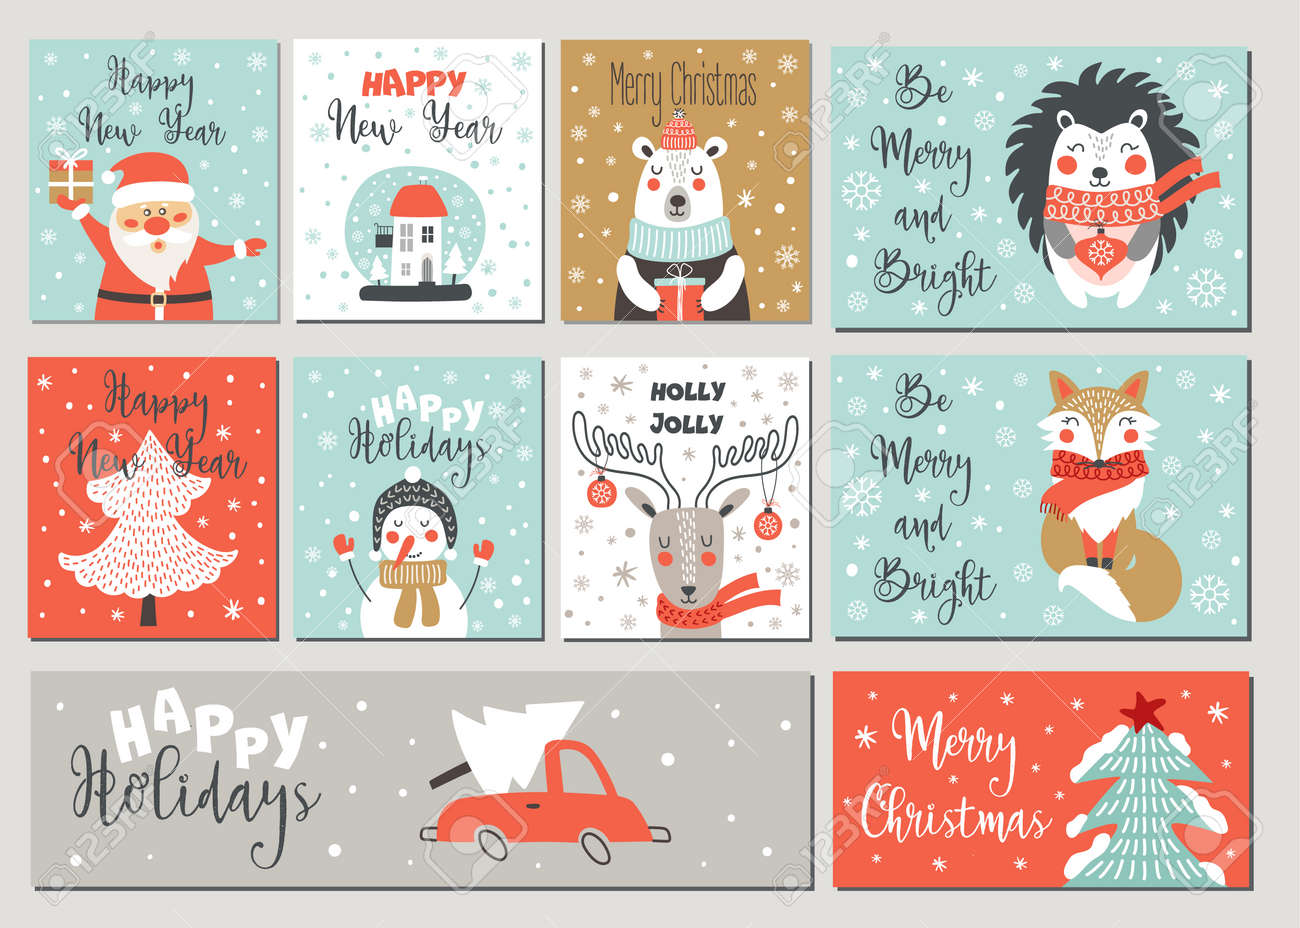 Merry Christmas and Happy New Year greeting card set with hand drawing elements. Vector illustrations - 131408414